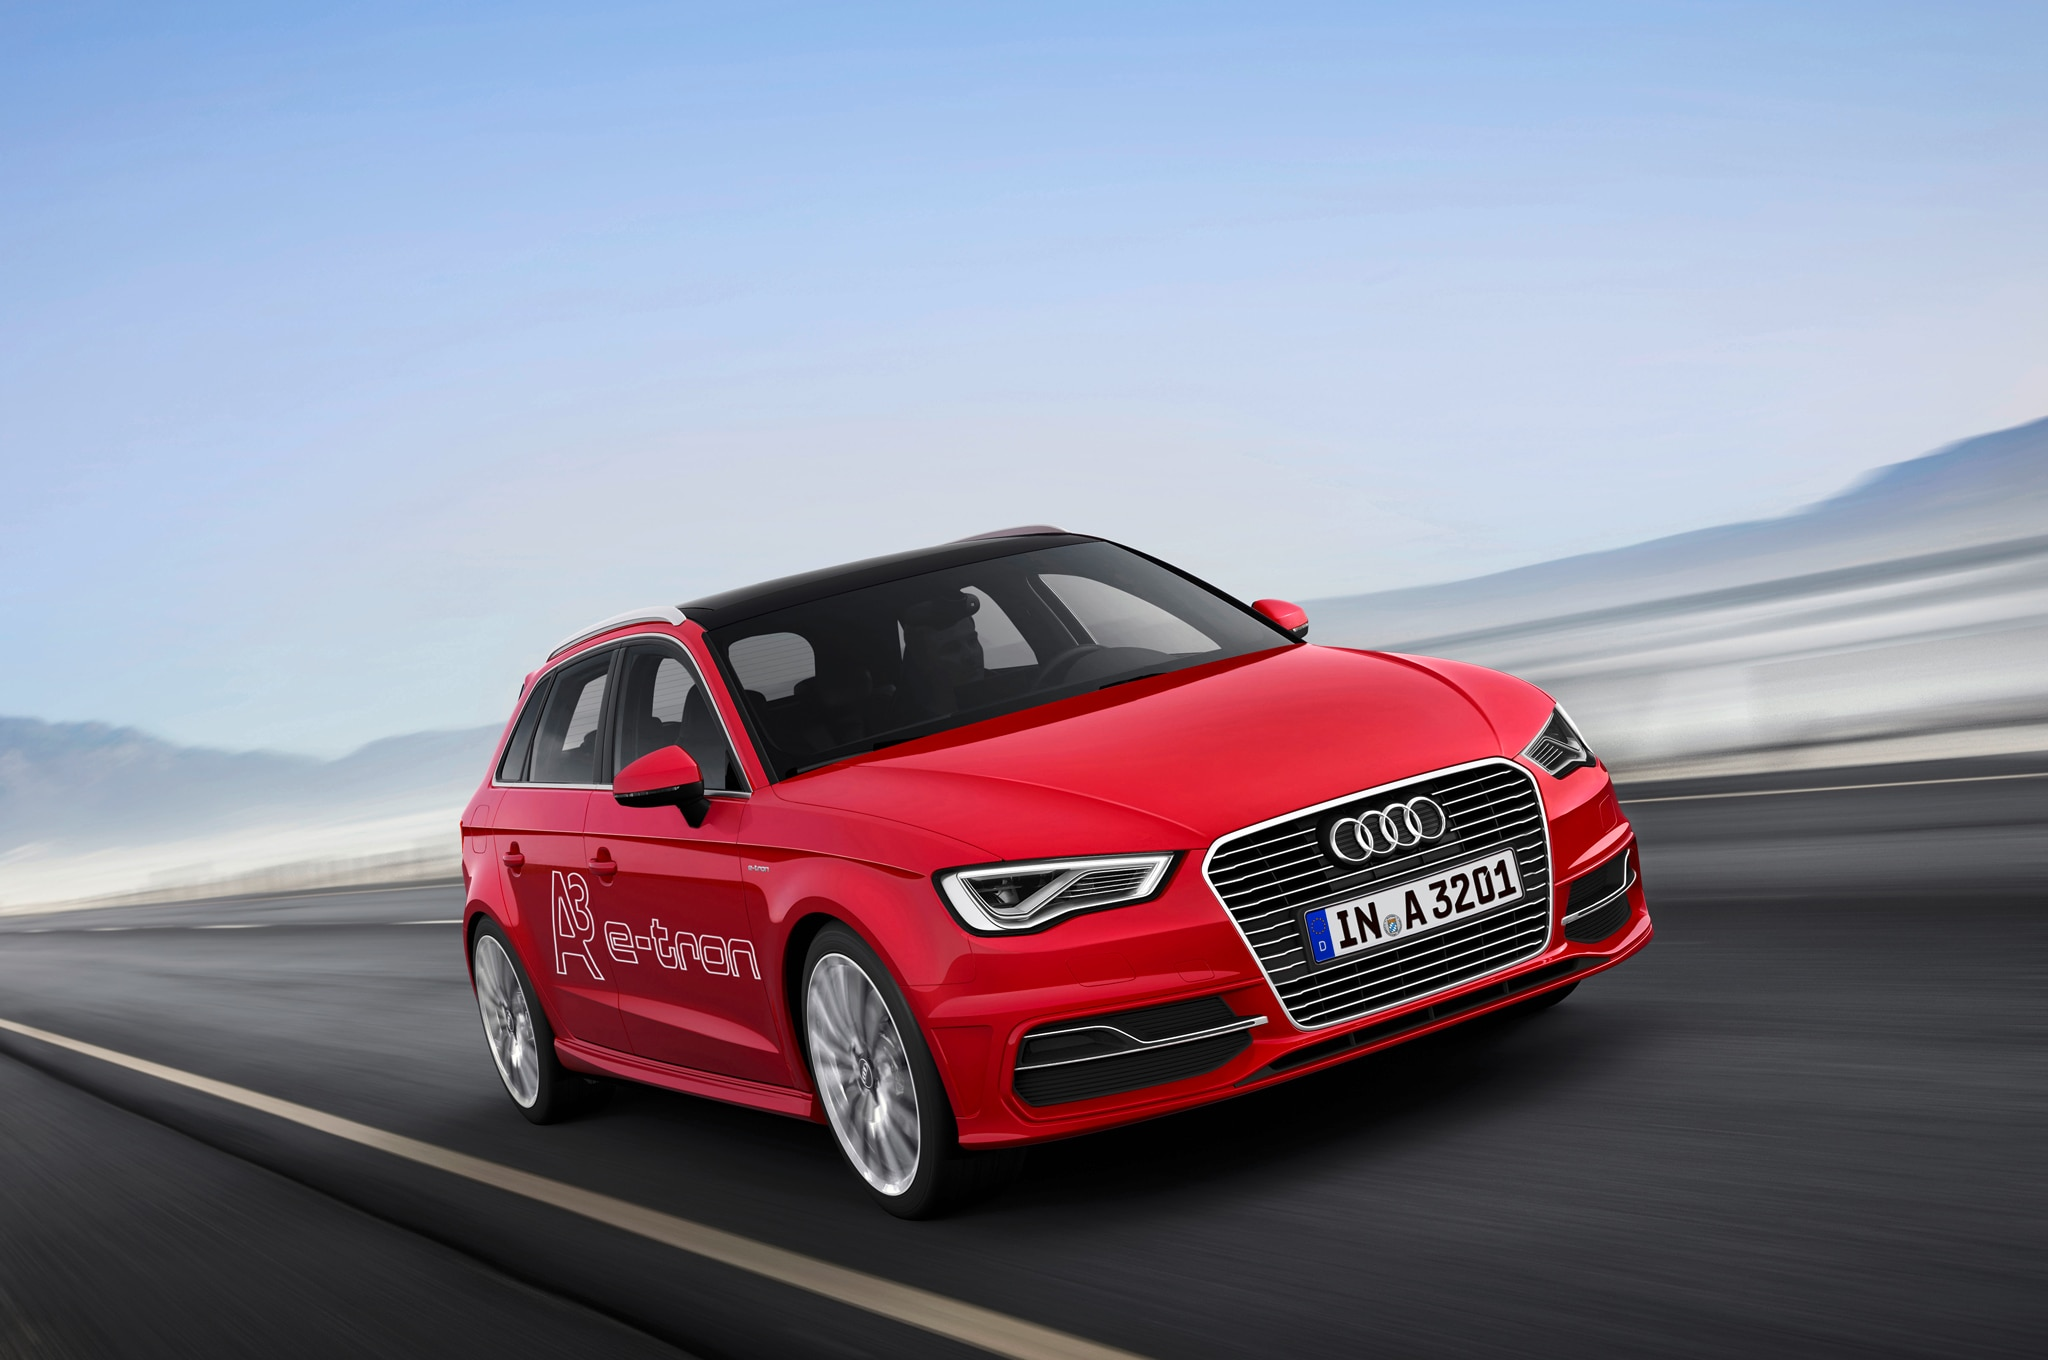 2015 Audi A3 Sportback Front Three Quarter View1